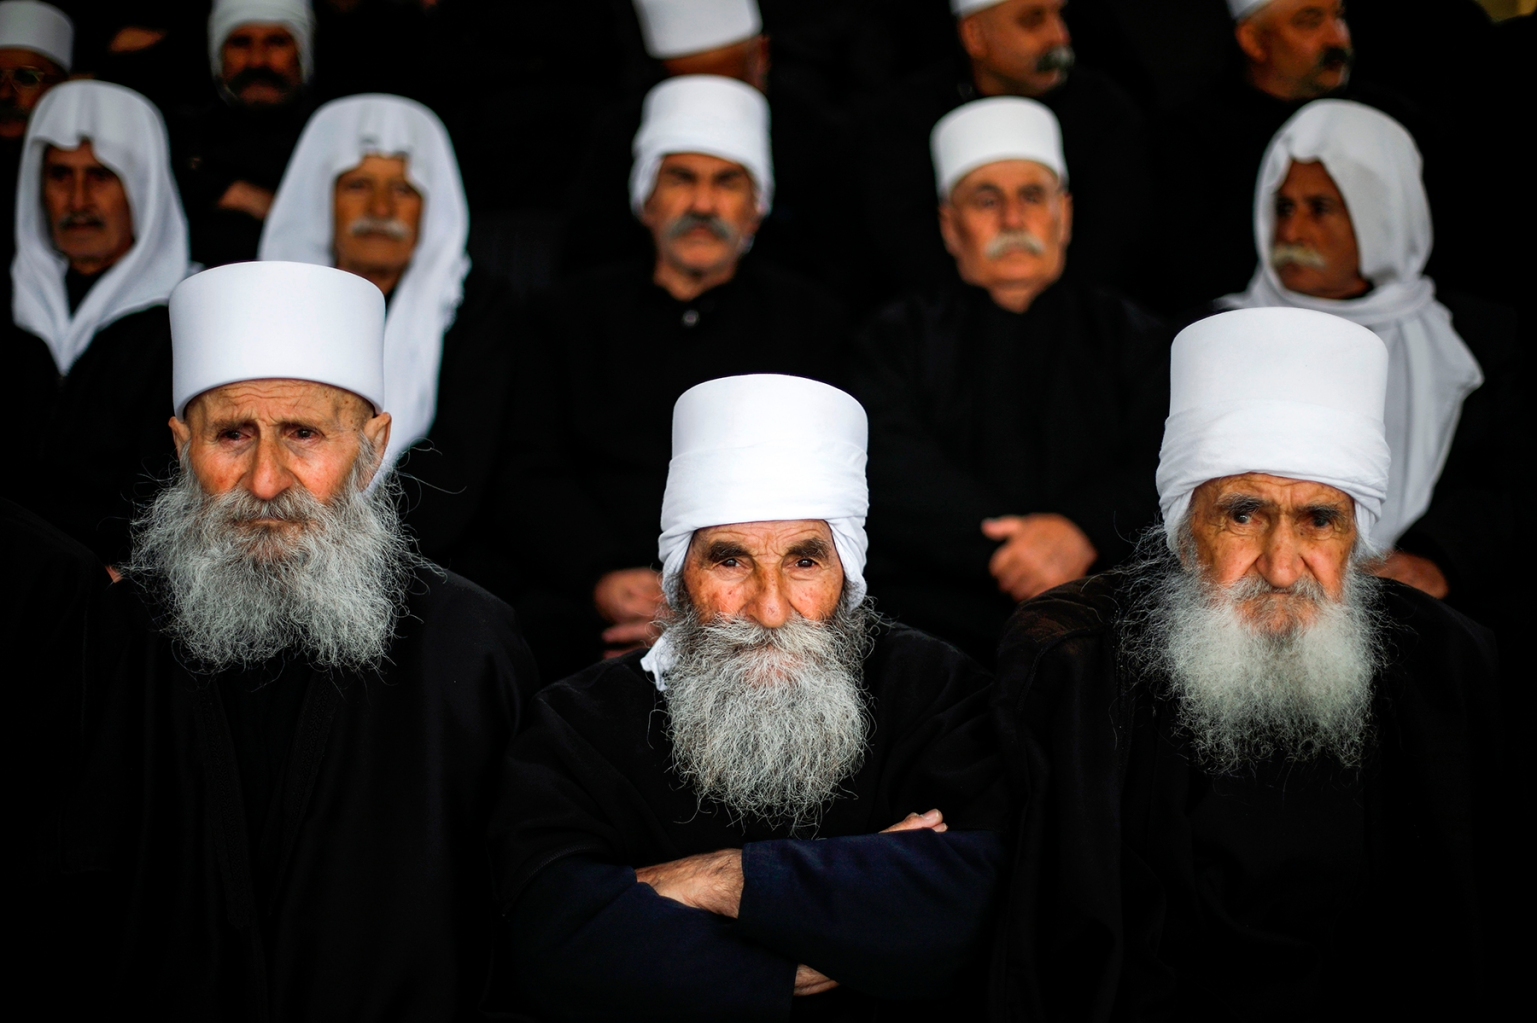 Elderly Druze men gather during a protest against U.S. President Donald Trump's recognition of Israel's annexation of the Golan Heights, in the Druze village of Buqata, on March 30. JALAA MAREY/AFP/Getty Images